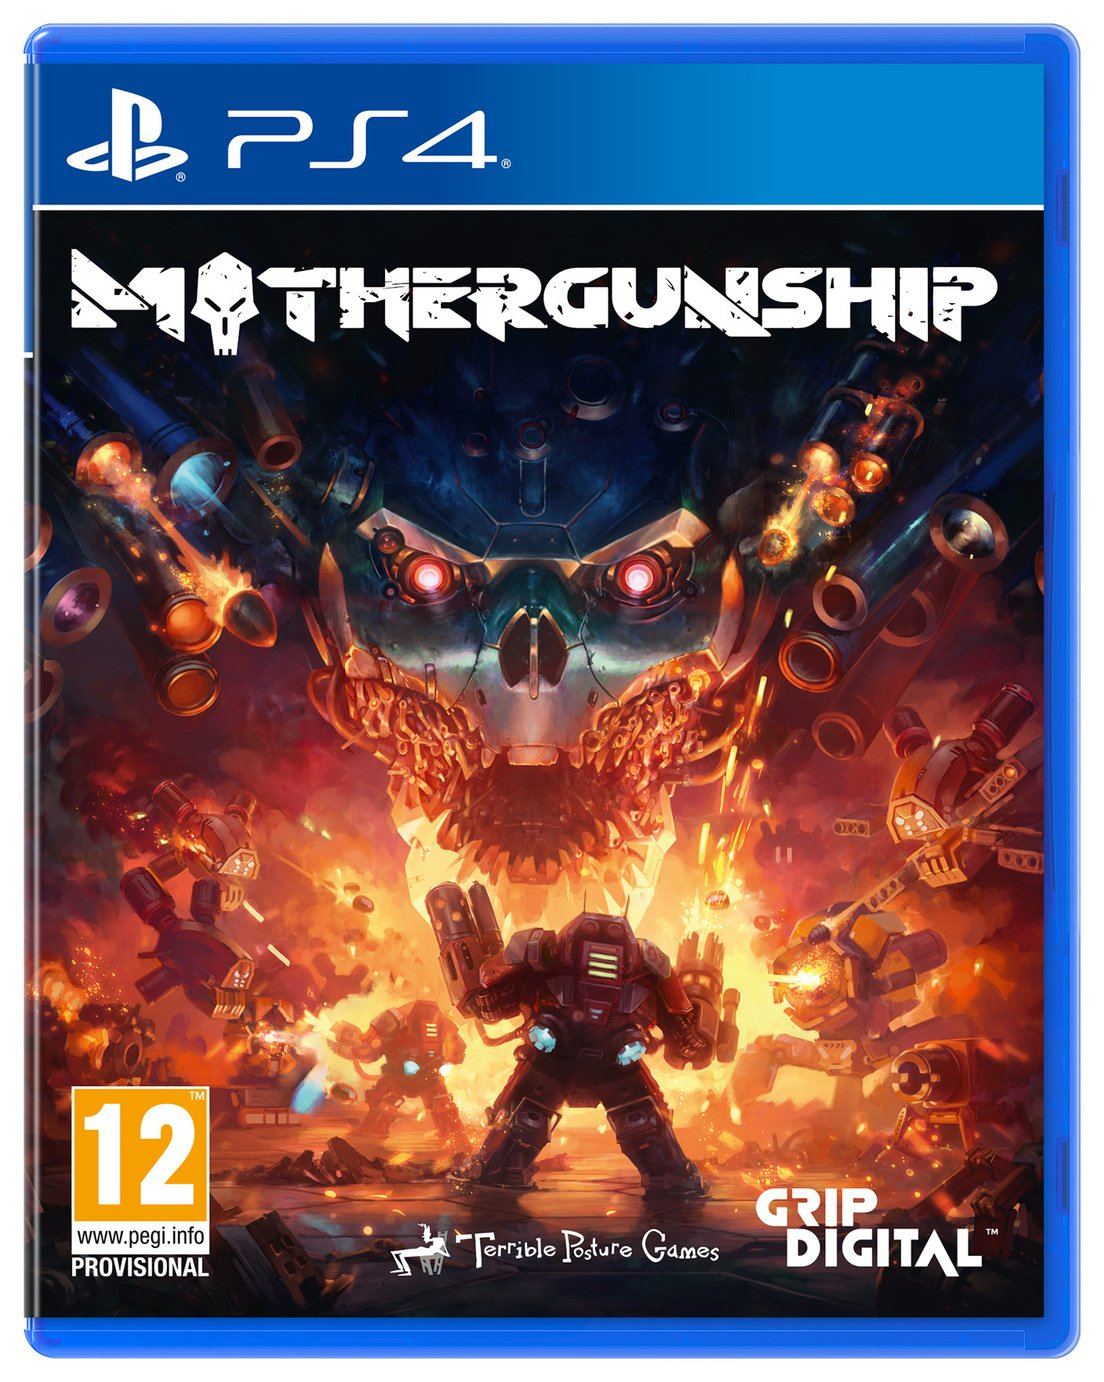 MOTHERGUNSHIP PS4 Pre-Order Game